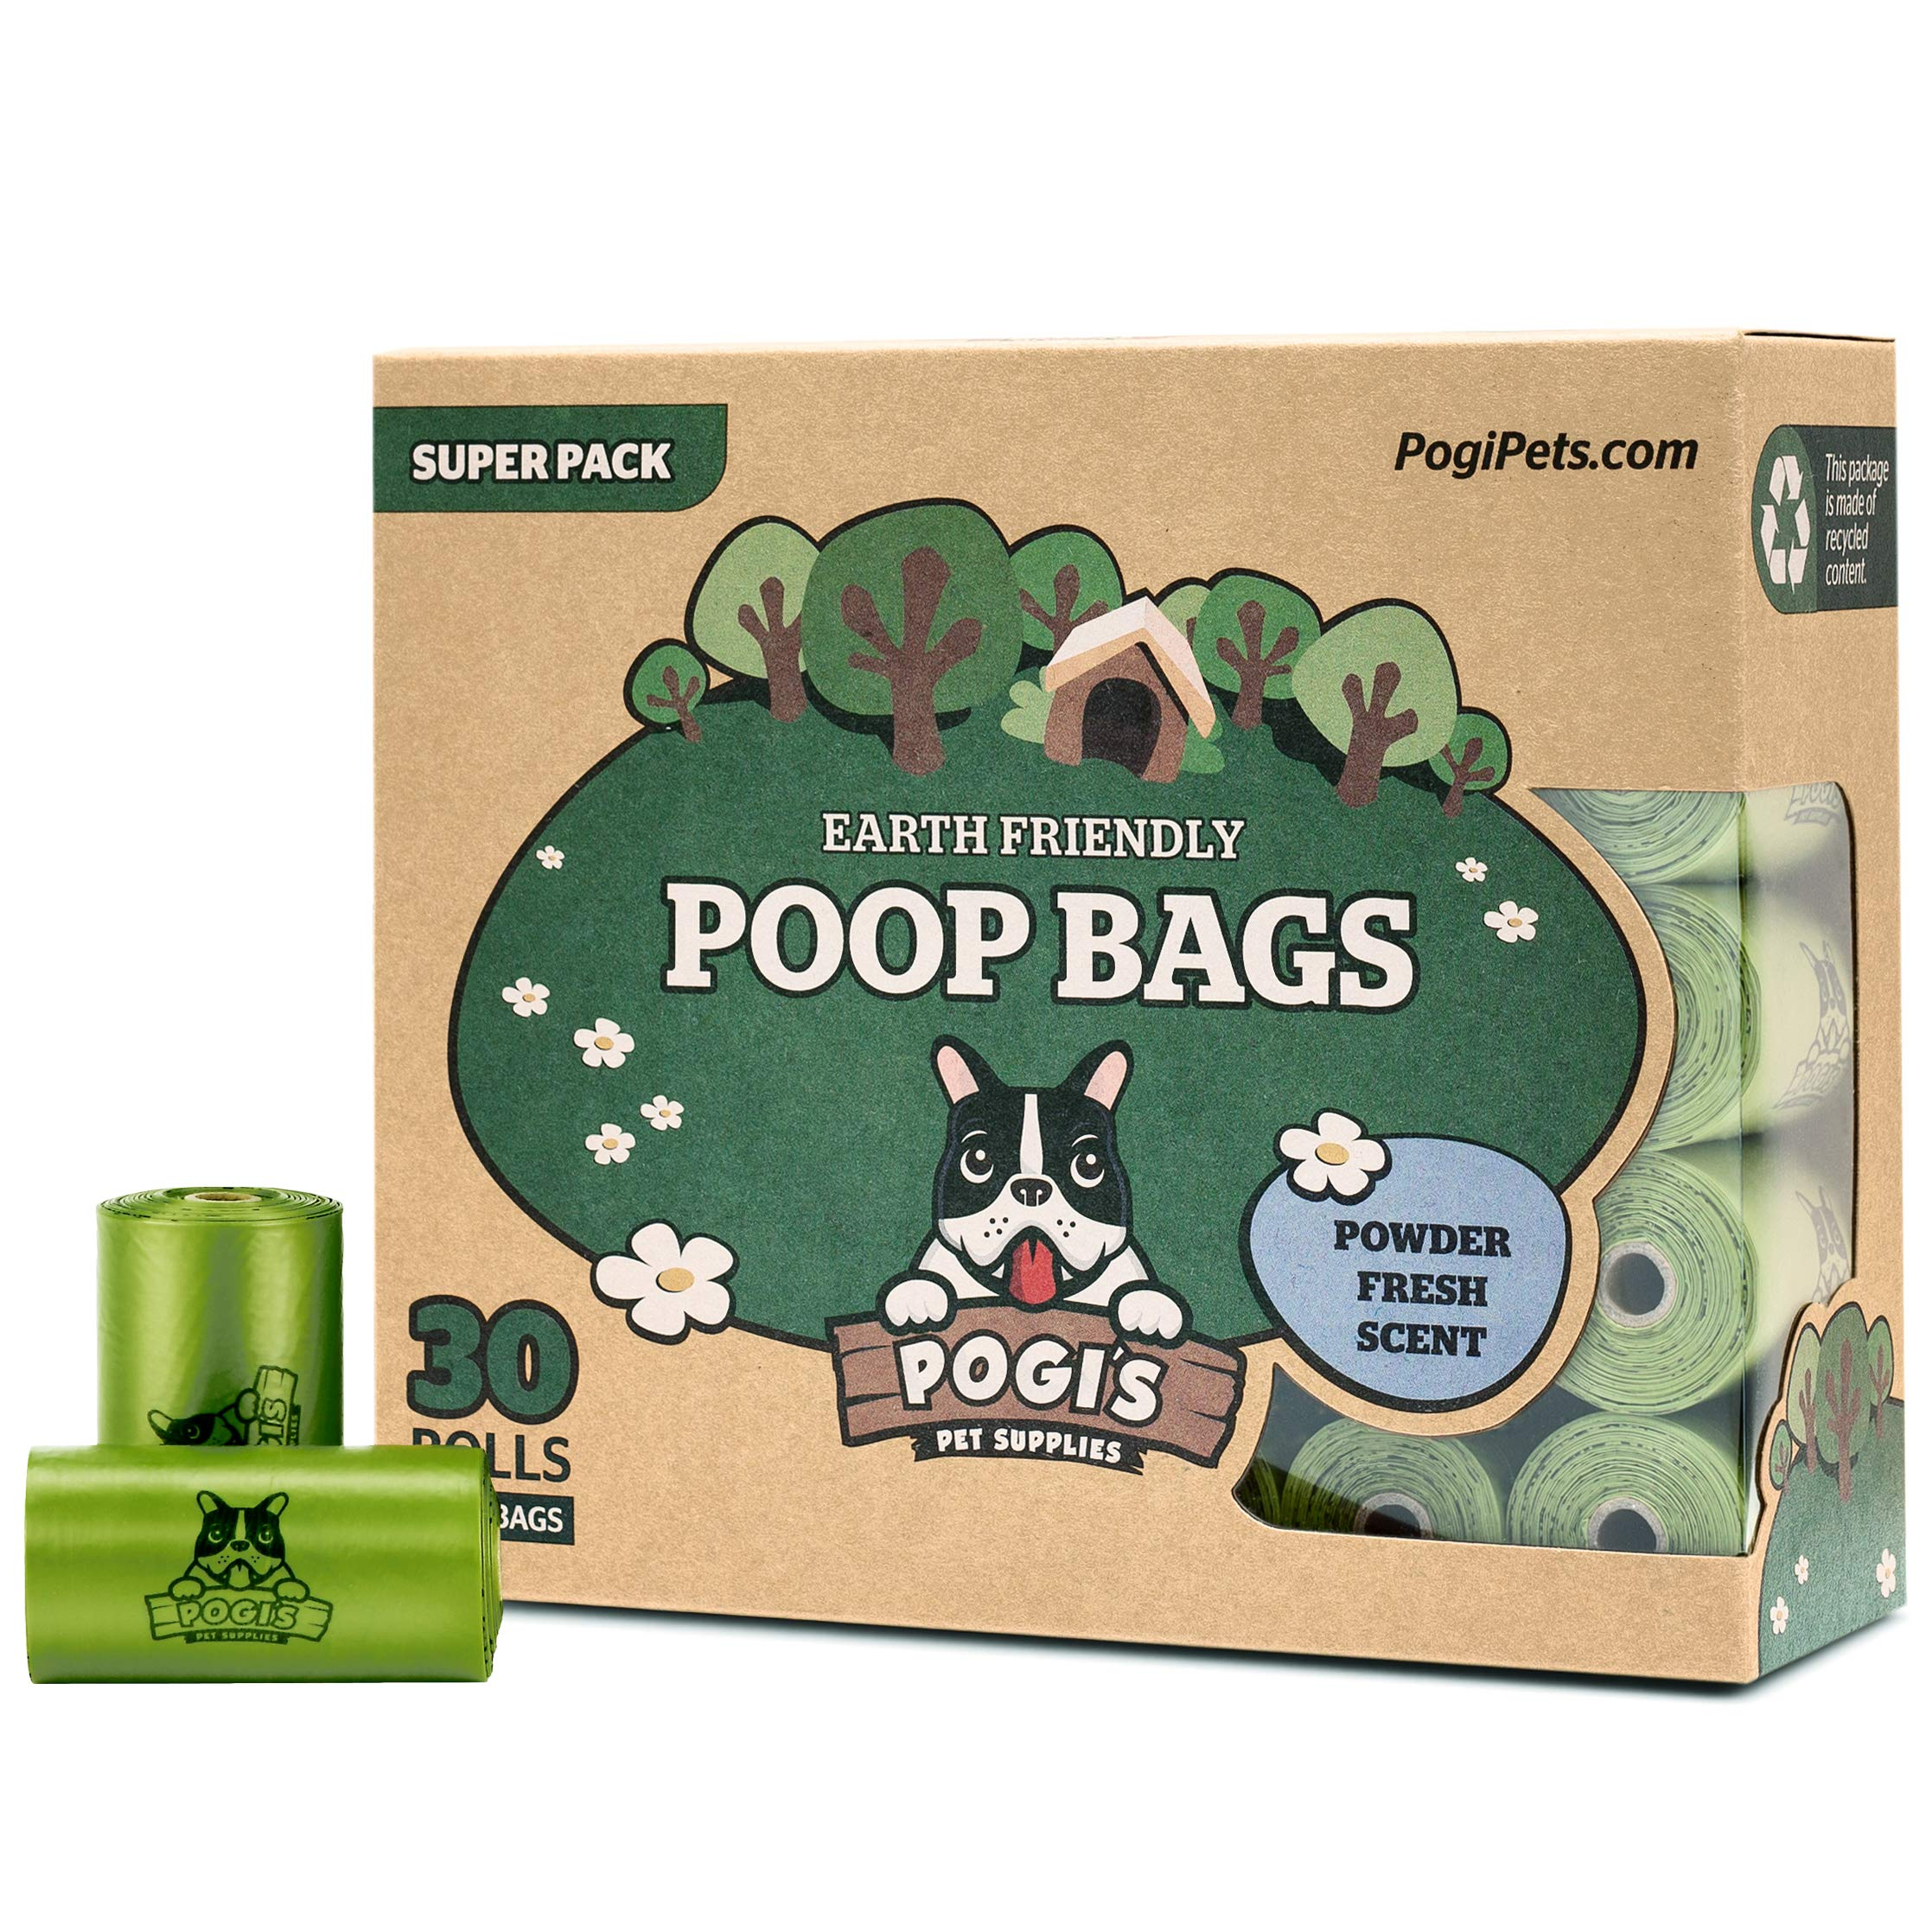 Pogi's Poop Bags - 30 Rolls (450 Bags) - Earth-Friendly, Scented, Leak-Proof Pet Waste Bags by Pogi's Pet Supplies